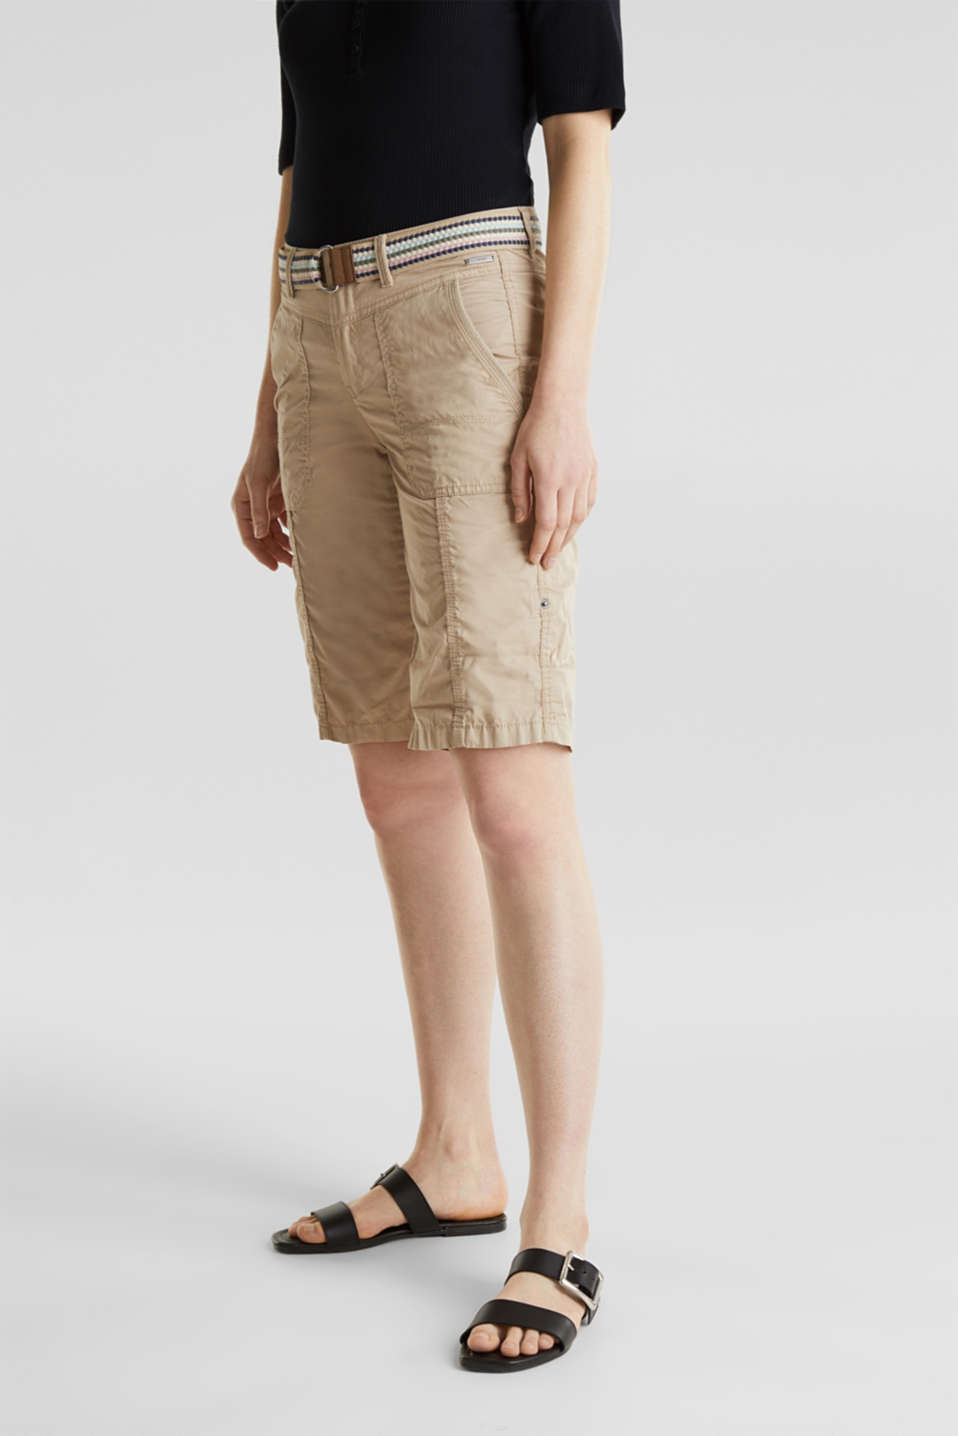 PLAY cotton shorts, BEIGE, detail image number 6